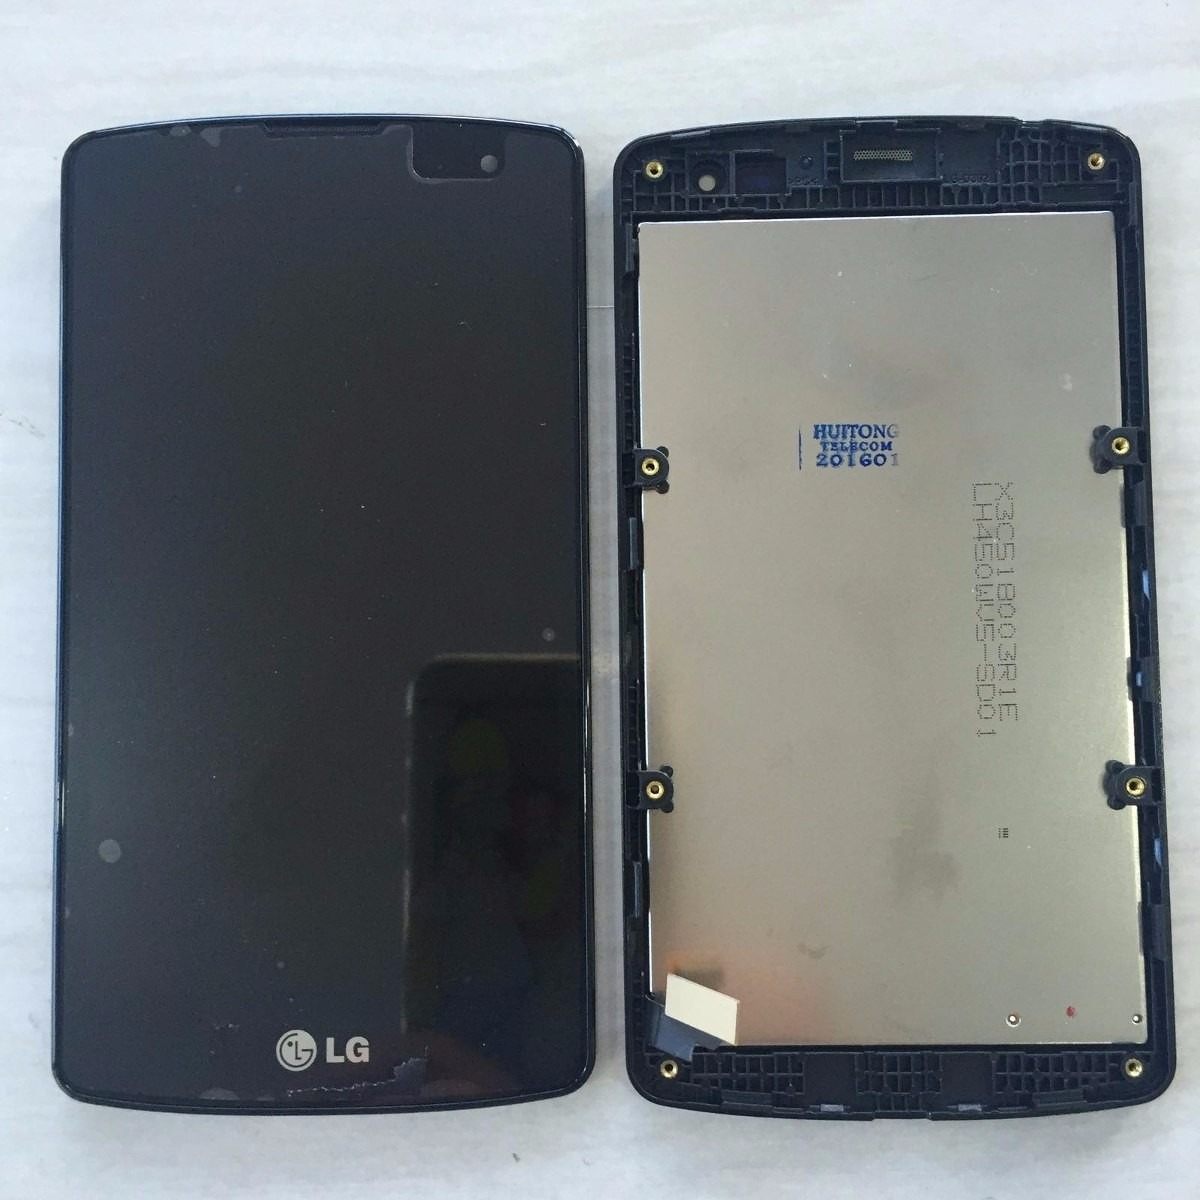 Tela Touch Display LCD LG G2 Lite D295 D392 D295f Original